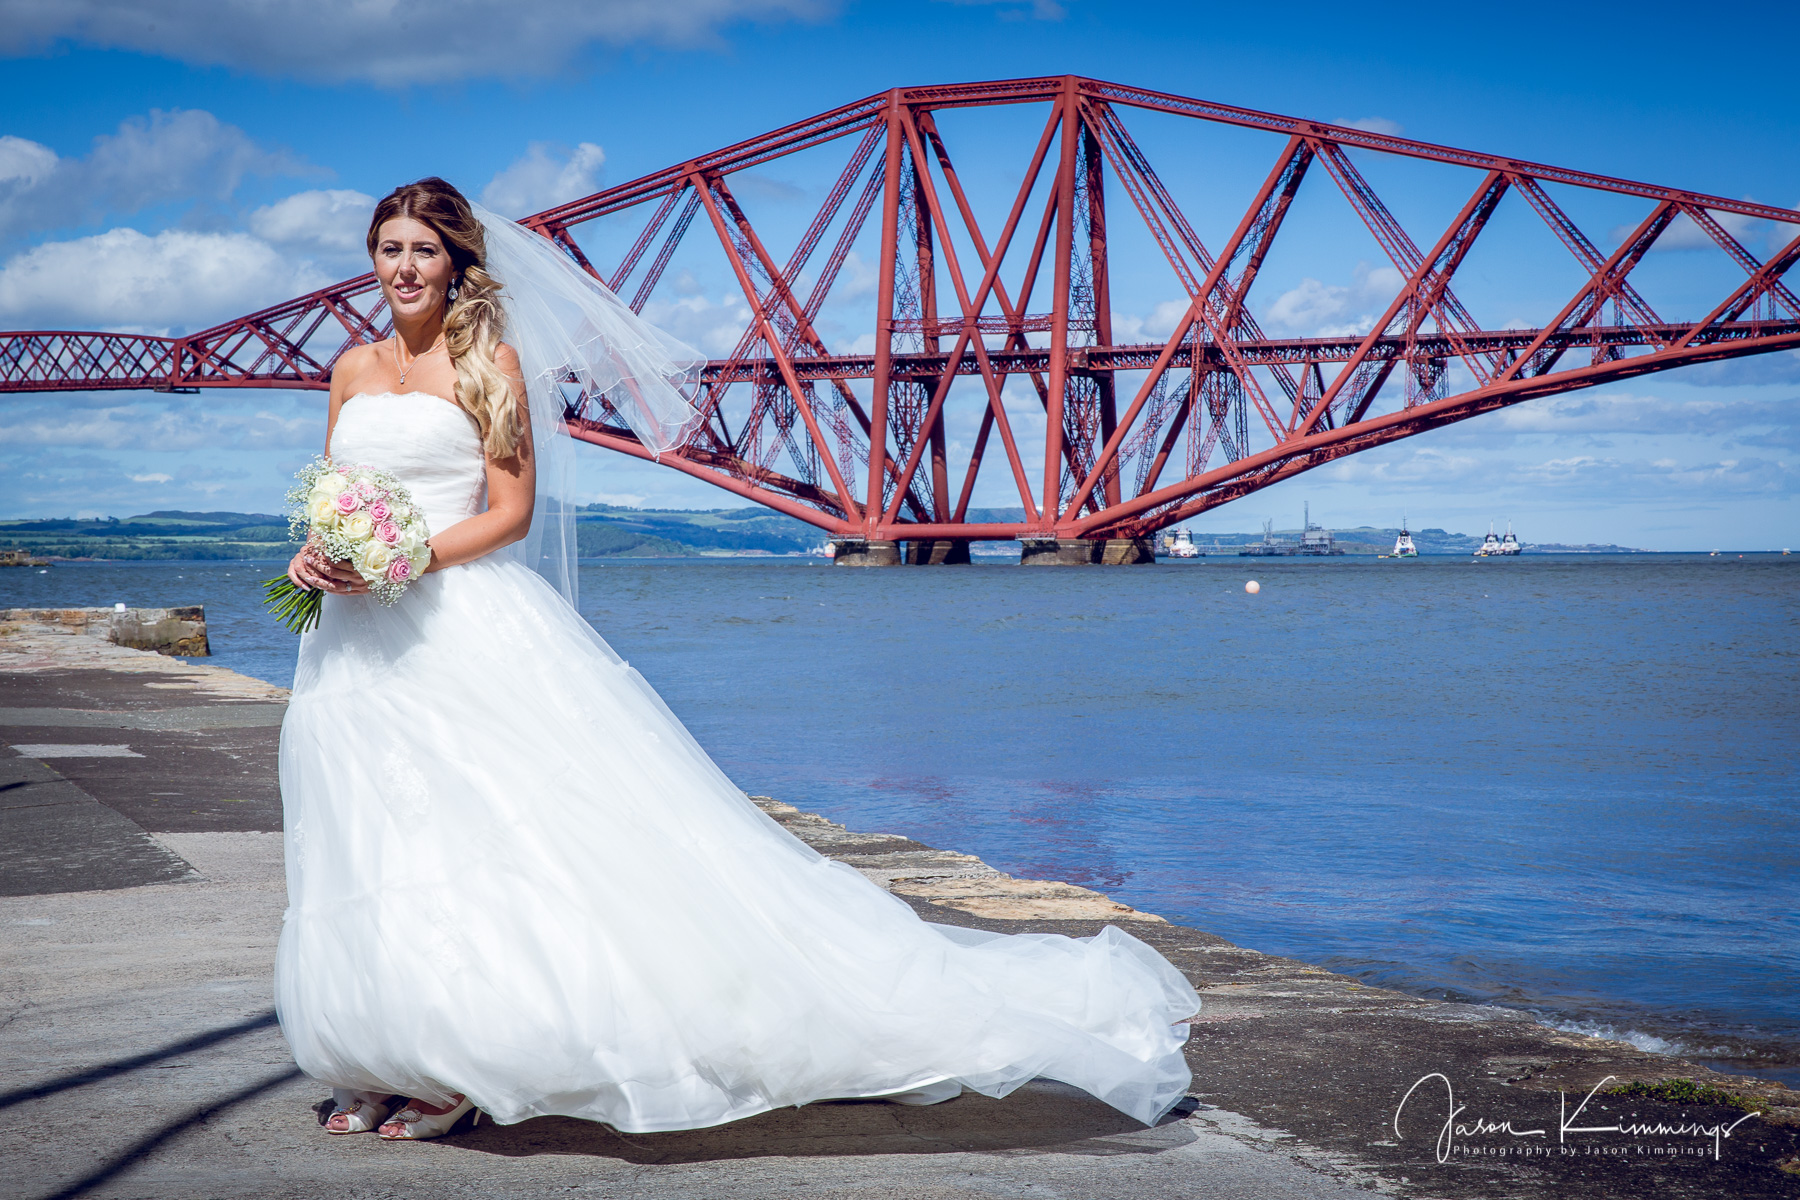 South-queensferry-wedding-photography-edinburgh-23.jpg